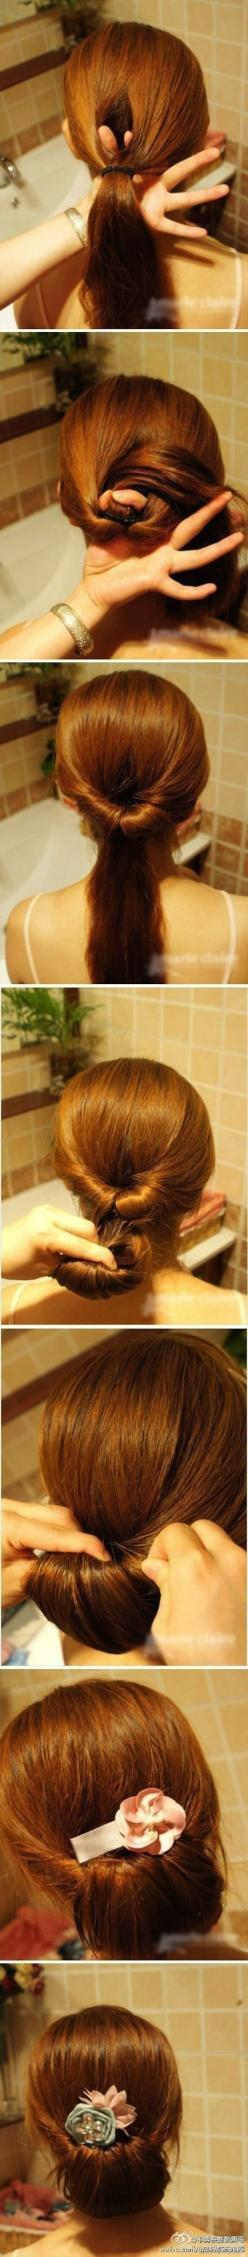 Lie and say this up-do took longer than brushing your teeth.   17 Ways To Never Have A Bad Hair Day Again: Easy Ponytail Hairstyle, Hair Updos Tutorial, Hair Bun, Quick Easy Hairstyle, Hair Style, Easy Bun, Easy Updo